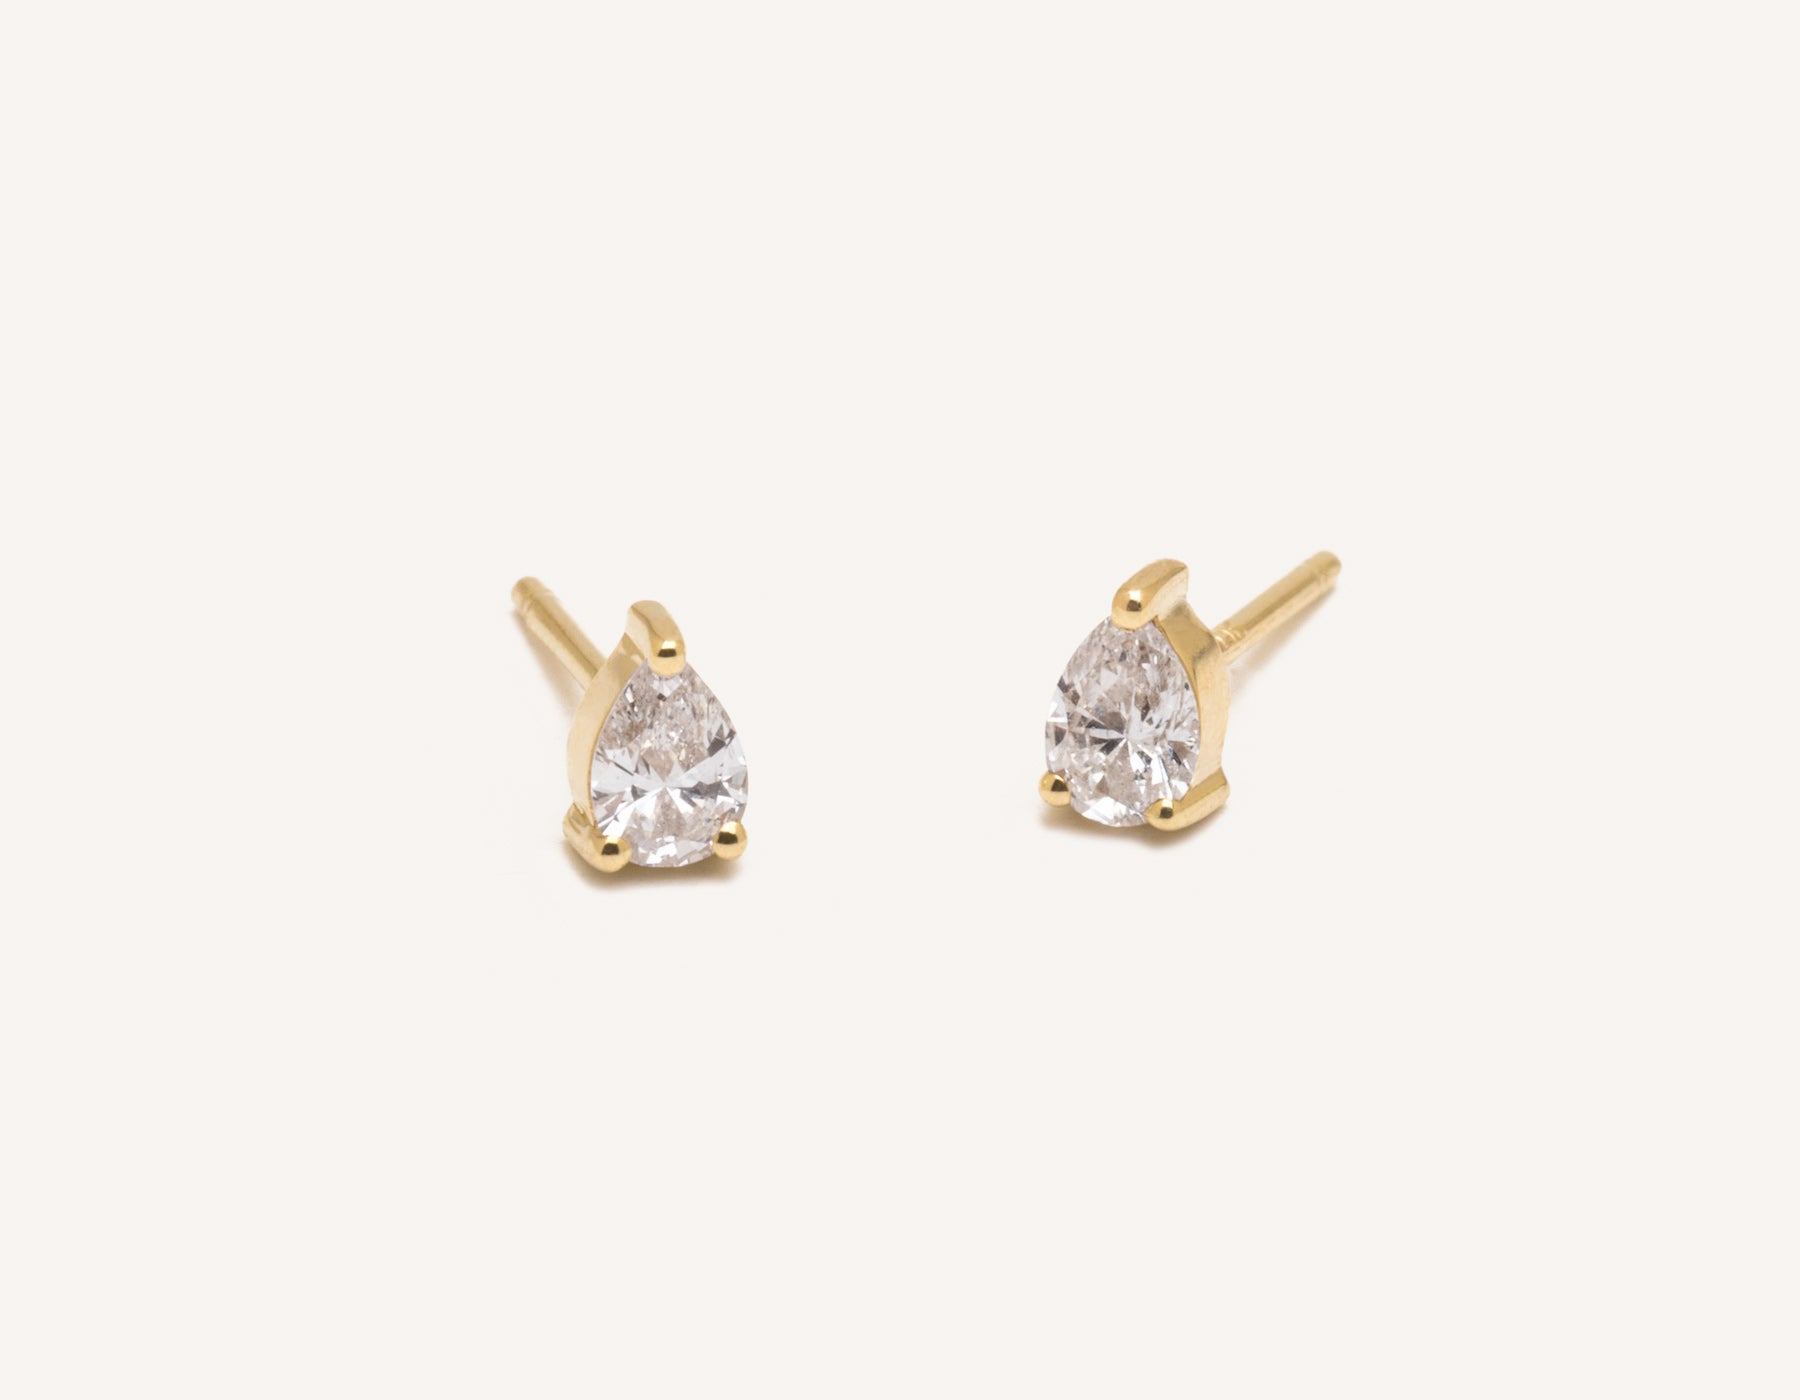 1ad042250b5 Vrai   Oro 14k pear diamond earrings simple classic stud post